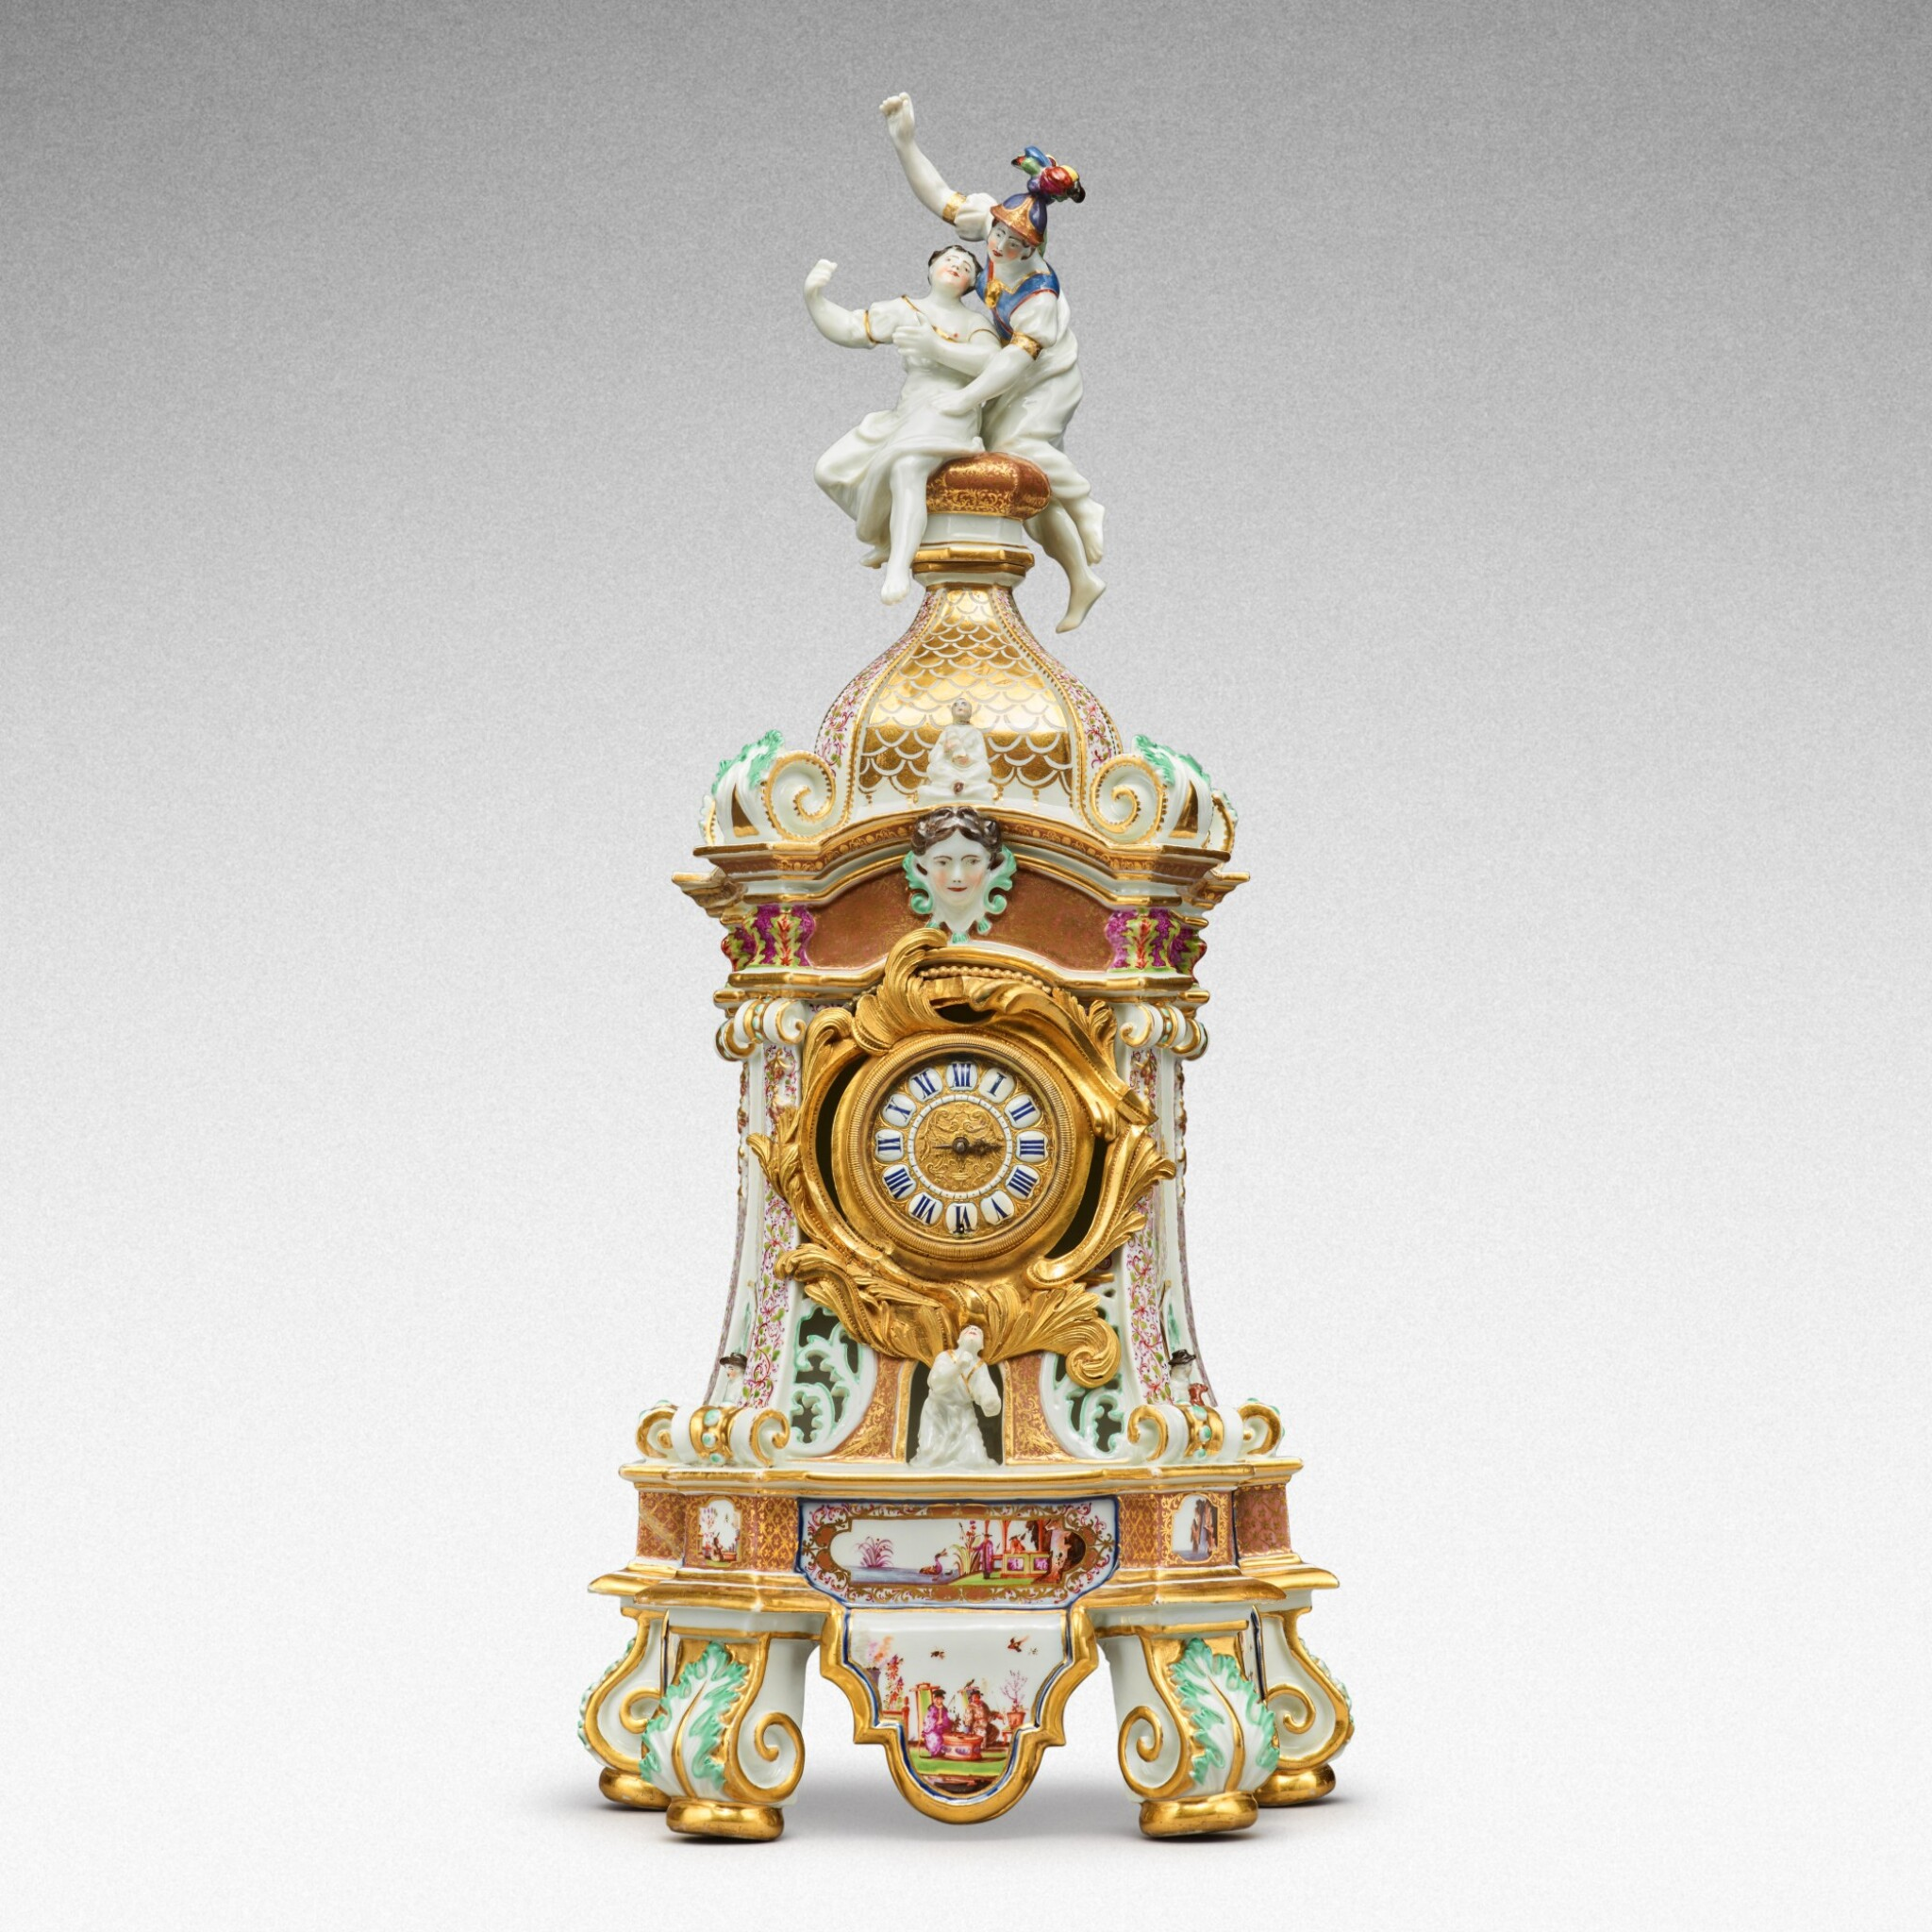 View full screen - View 1 of Lot 64. A highly important documentary and dated Meissen mantel clock case, Dated 1727, the gilt-bronze mount probably German, mid-18th century, the movement signed Barrey à Paris, Circa 1700 .